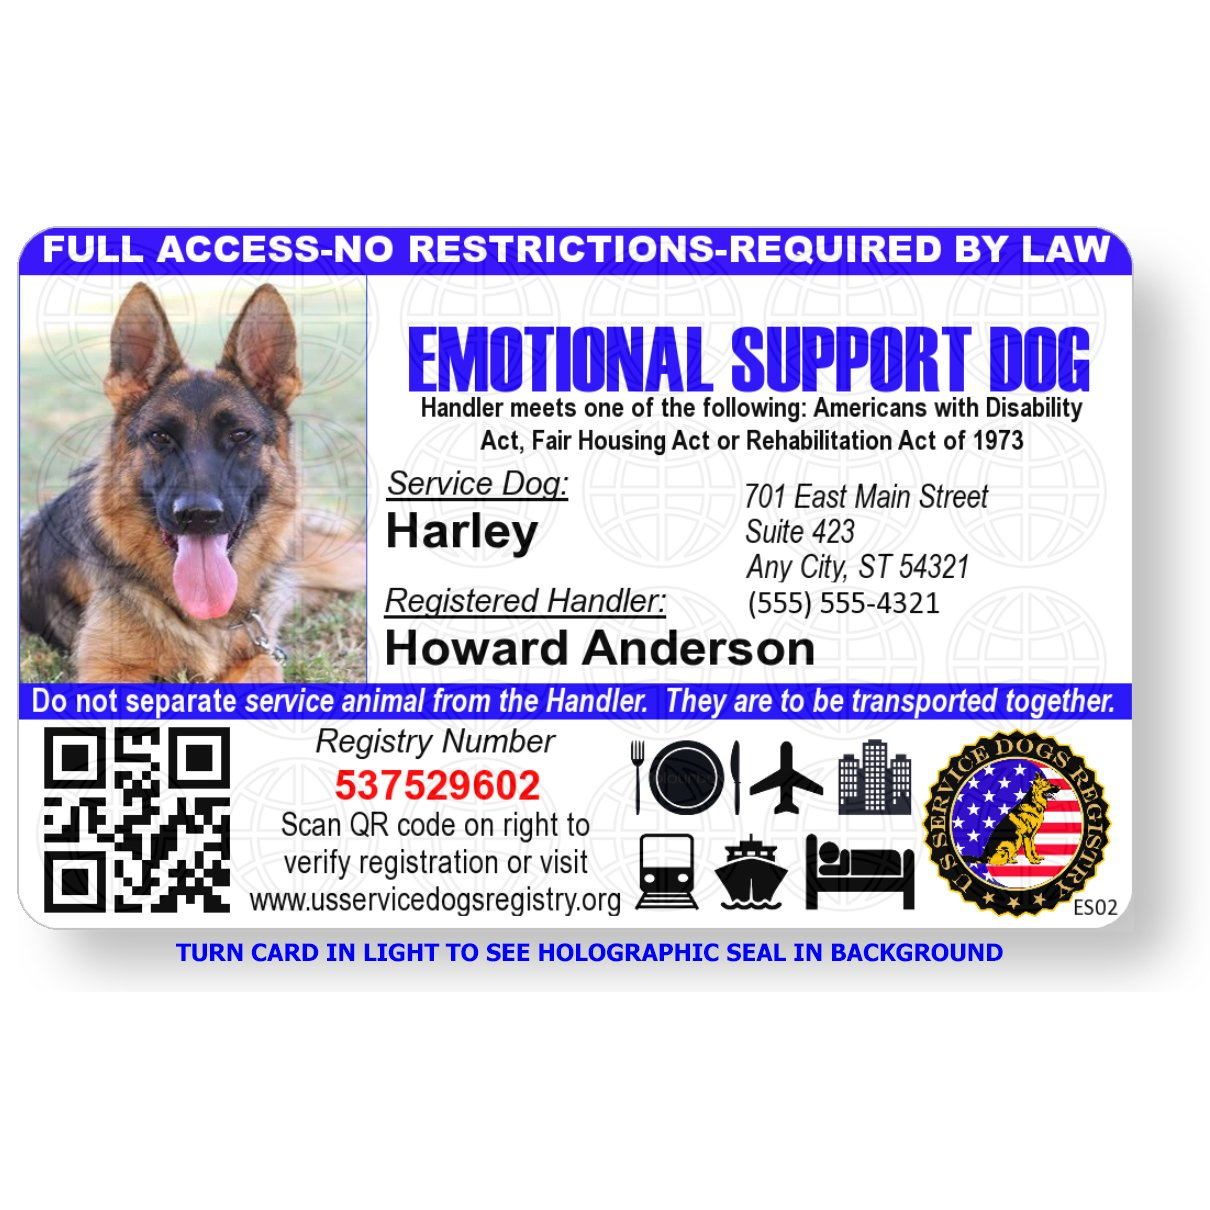 Just 4 Paws Custom Holographic QR Code Emotional Support Dog ID Card with Registration to Service Dogs Registry with Strap - Landscape Style by Just 4 Paws (Image #3)